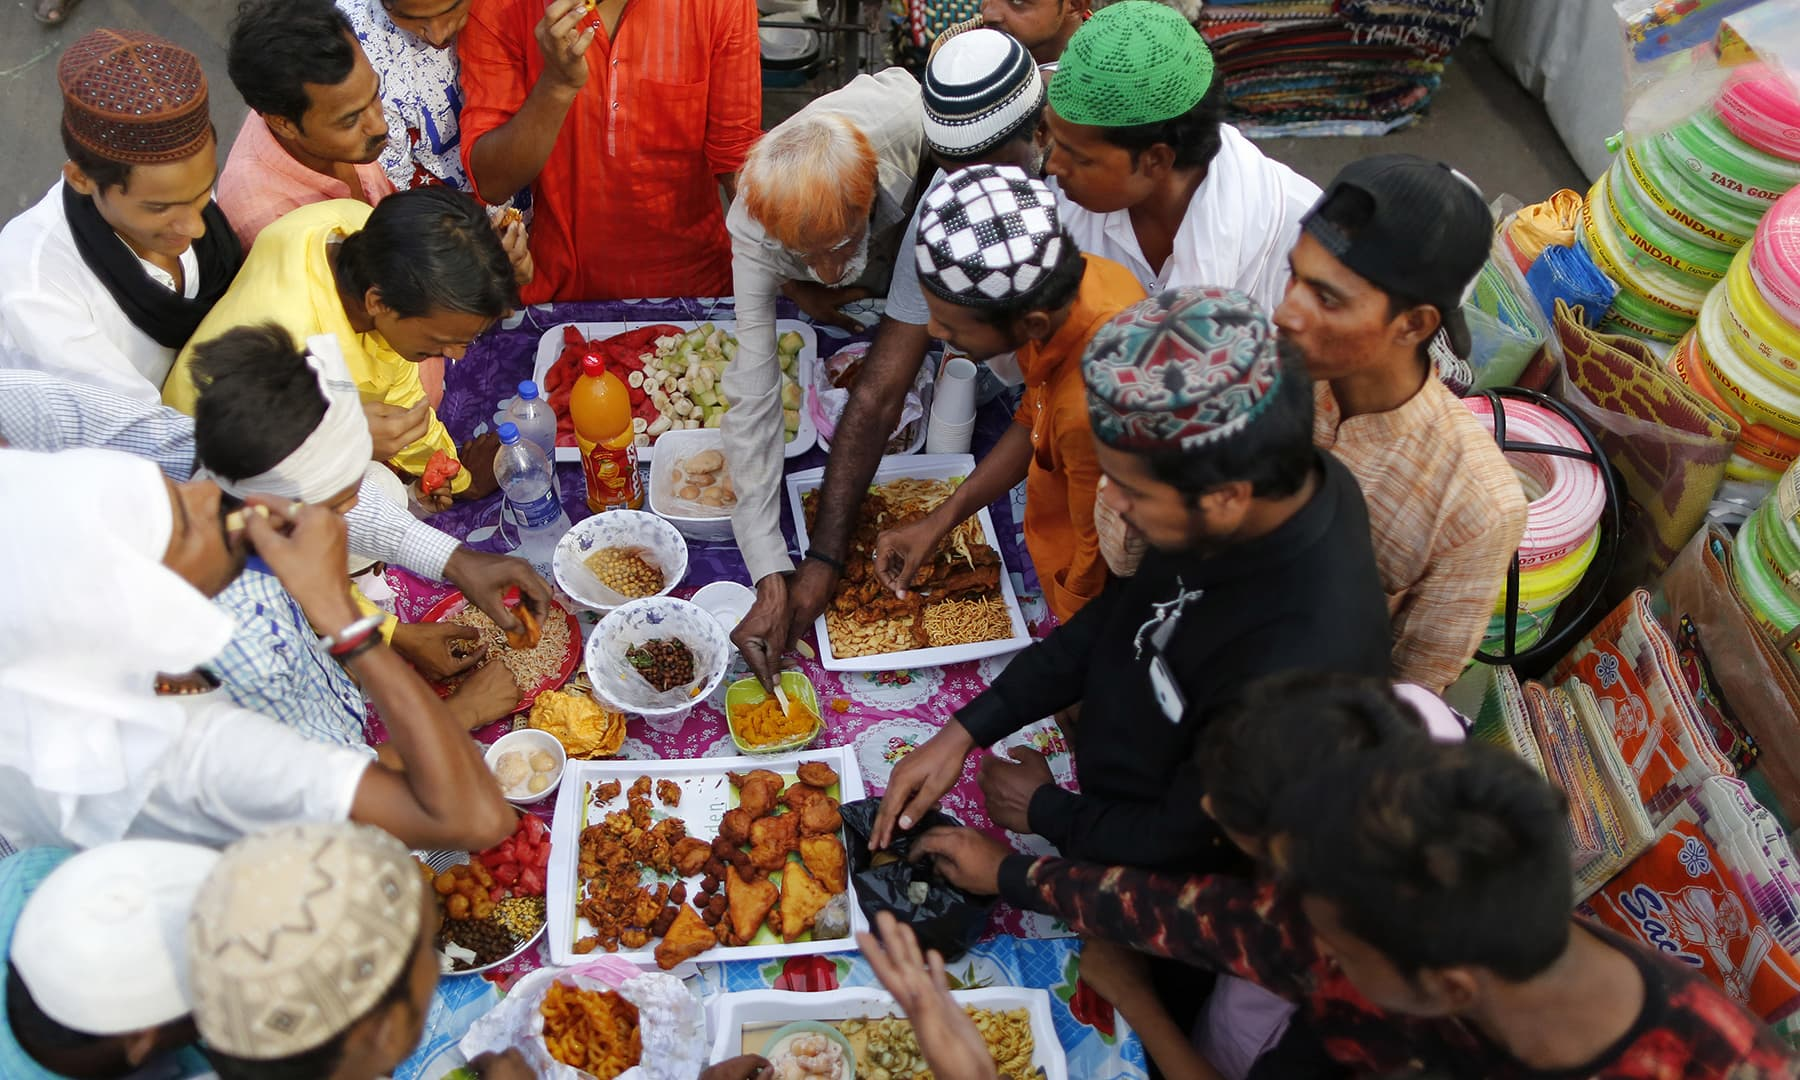 Indian Muslims break their day-long fast at a marketplace in Prayagraj, India, Friday. — AP